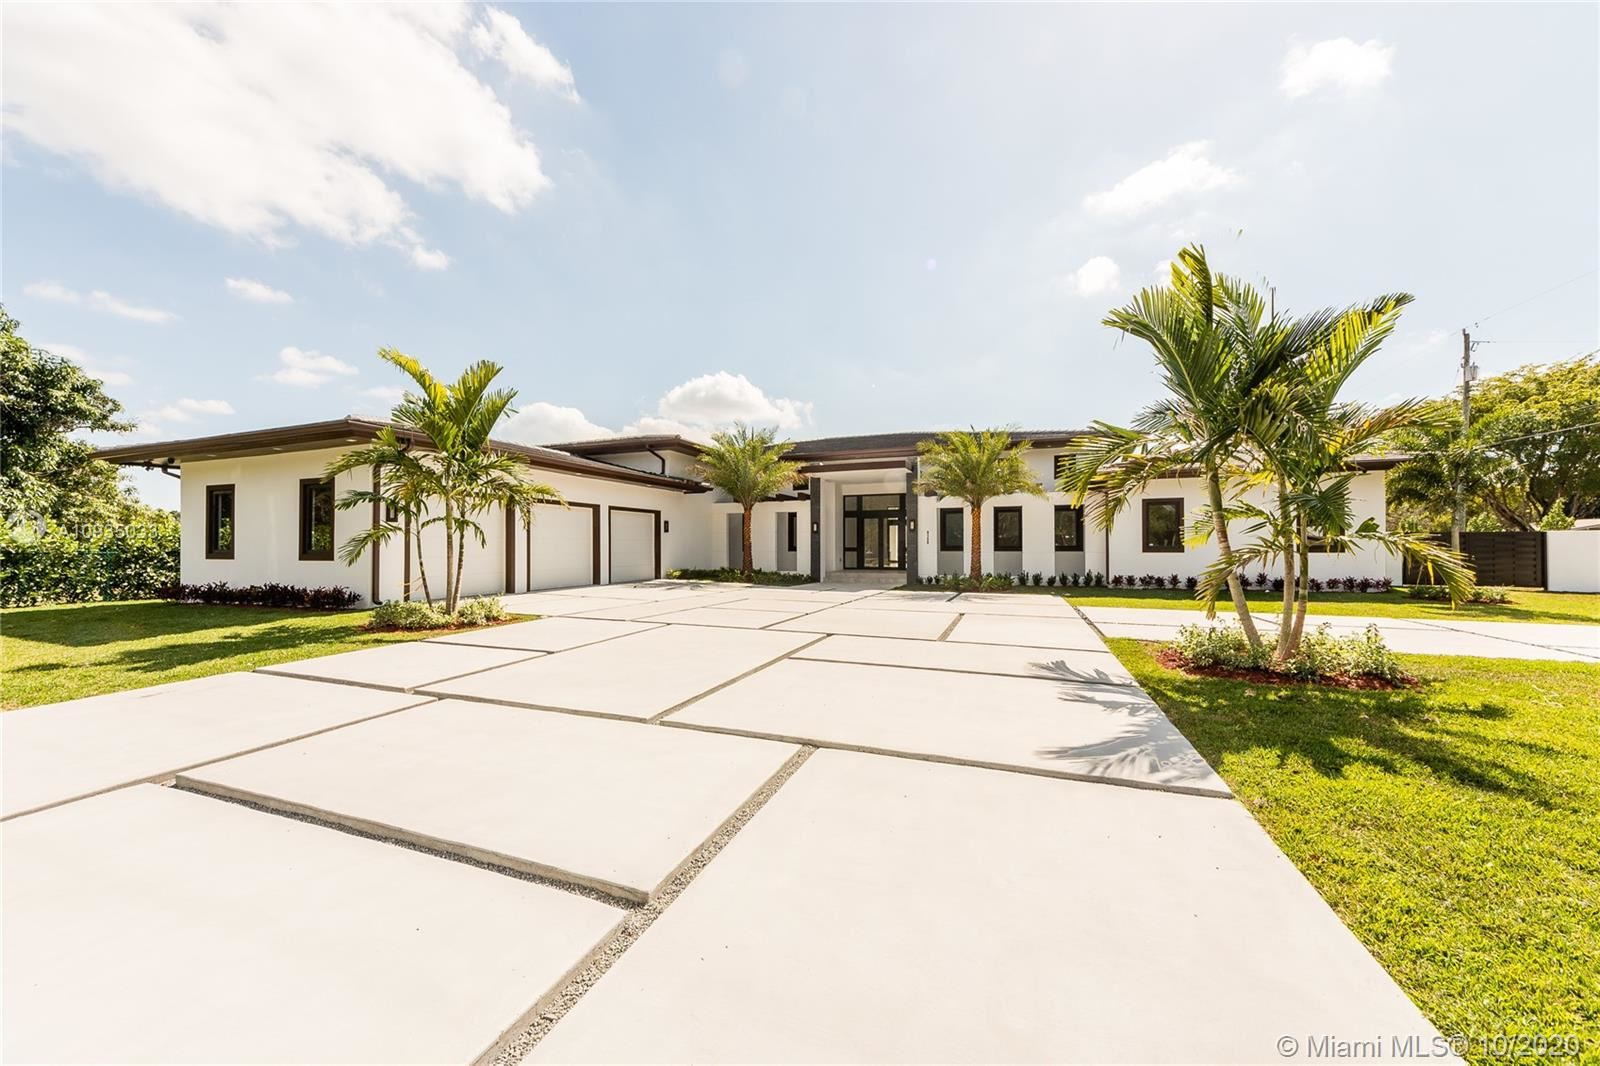 9150 SW 124th St, Miami, FL 33176 - #: A10935033